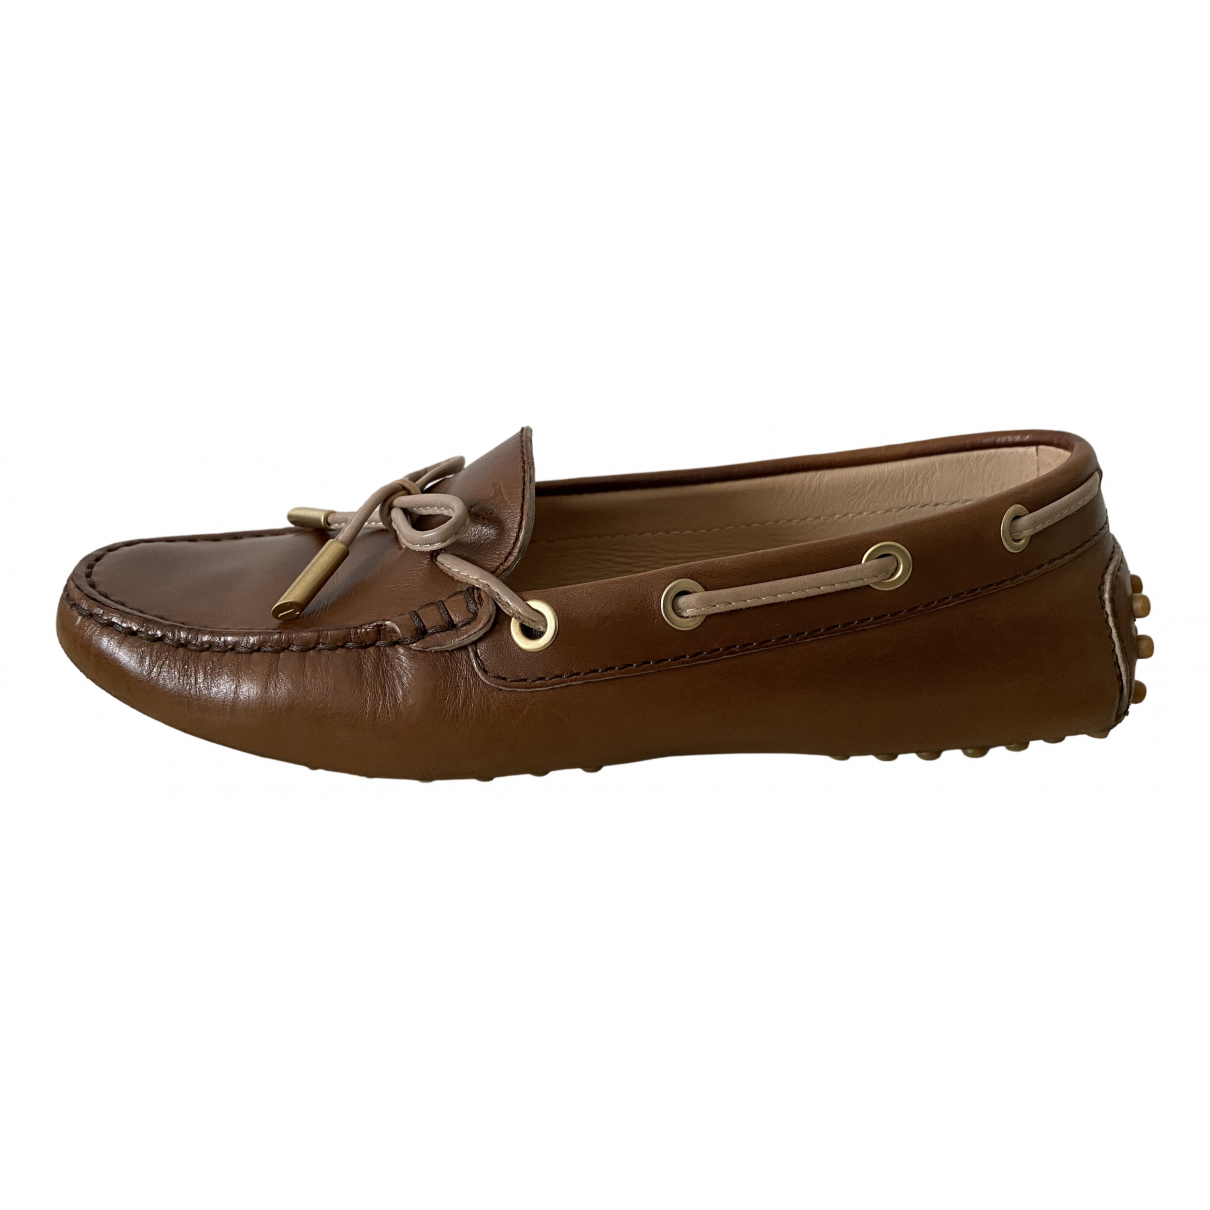 Tod's Gommino Brown Leather Flats for Women 35.5 EU